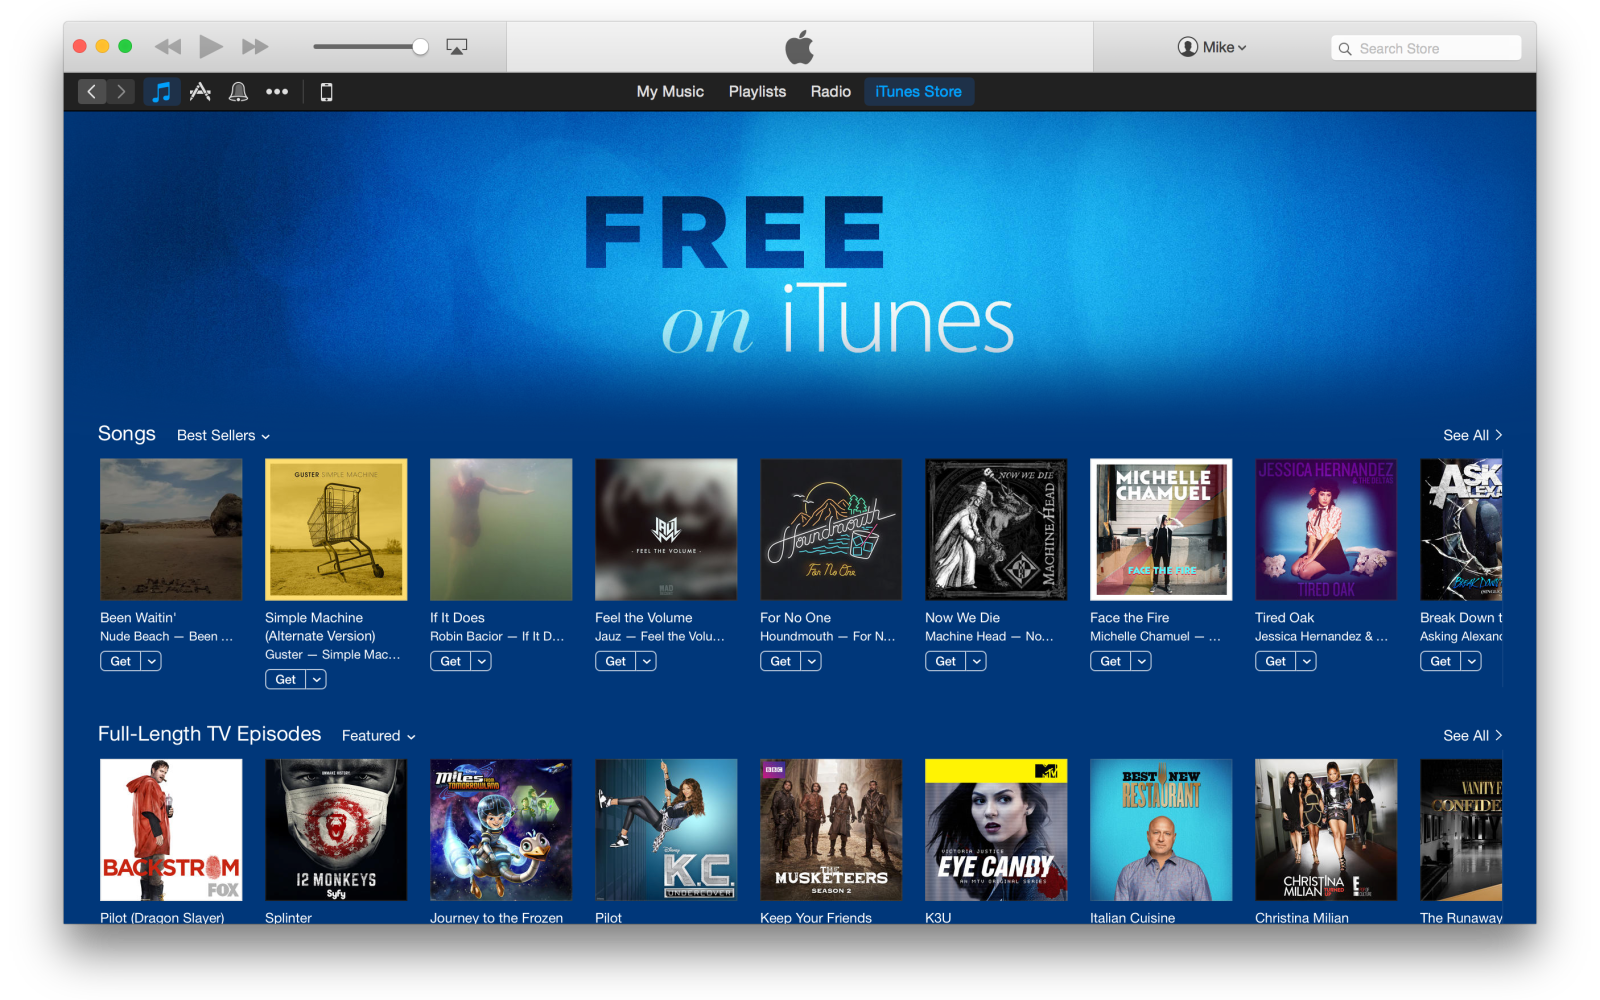 Apple adds new 'Free on iTunes' section featuring singles and TV shows to iTunes Store